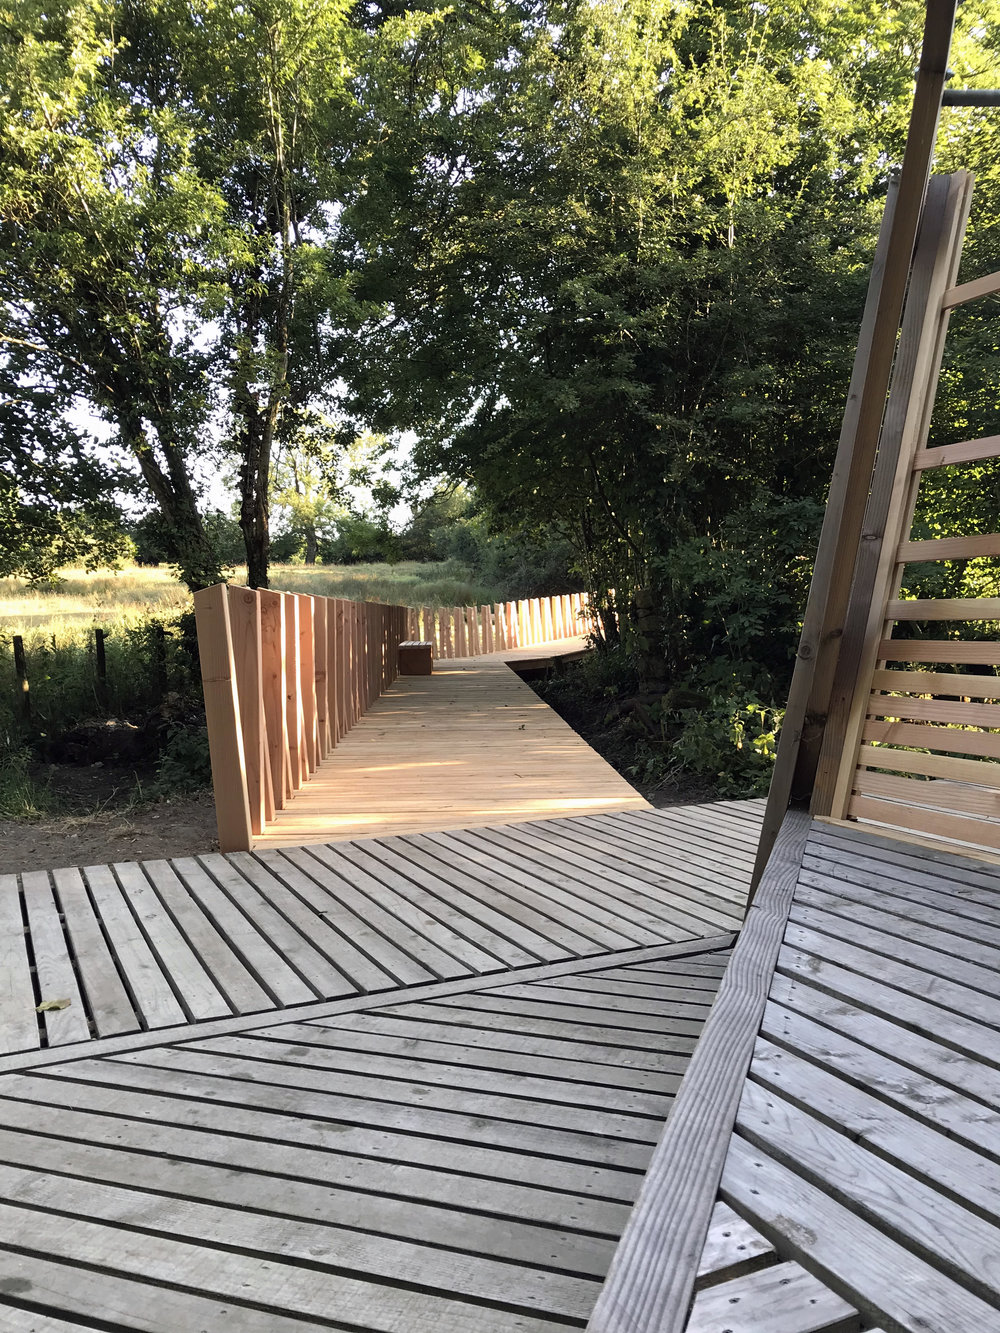 Kingcombe Boardwalk – phase 2 complete